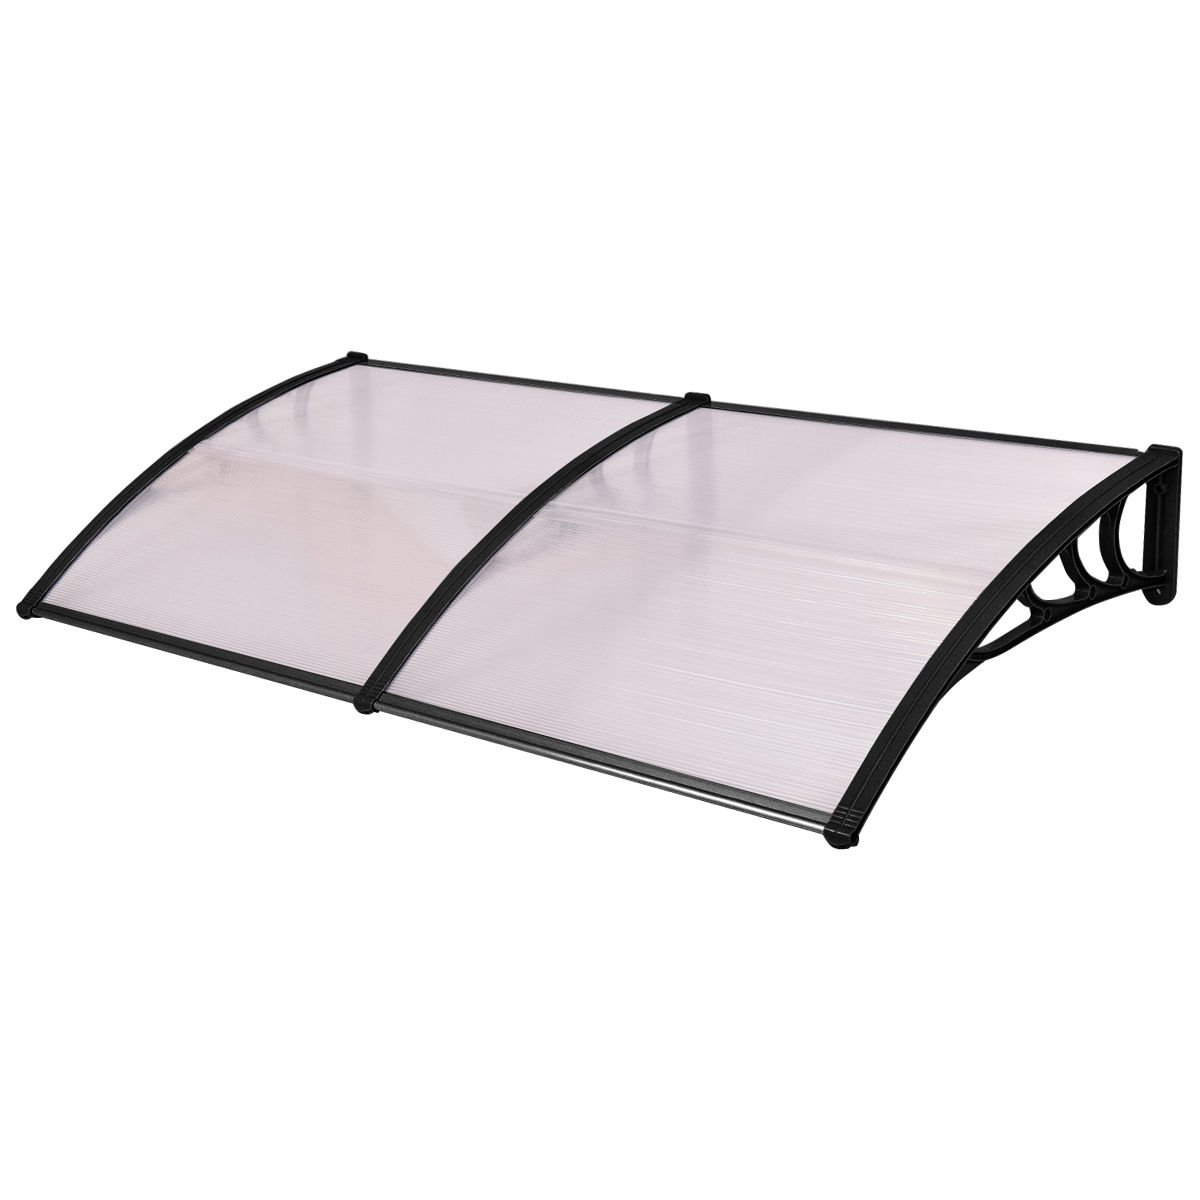 """Tangkula 40""""x 80"""" Window Awning Modern Polycarbonate Cover Front Door Outdoor Patio Canopy Sun shetter 3 Colors (Clear with Black Edge)"""